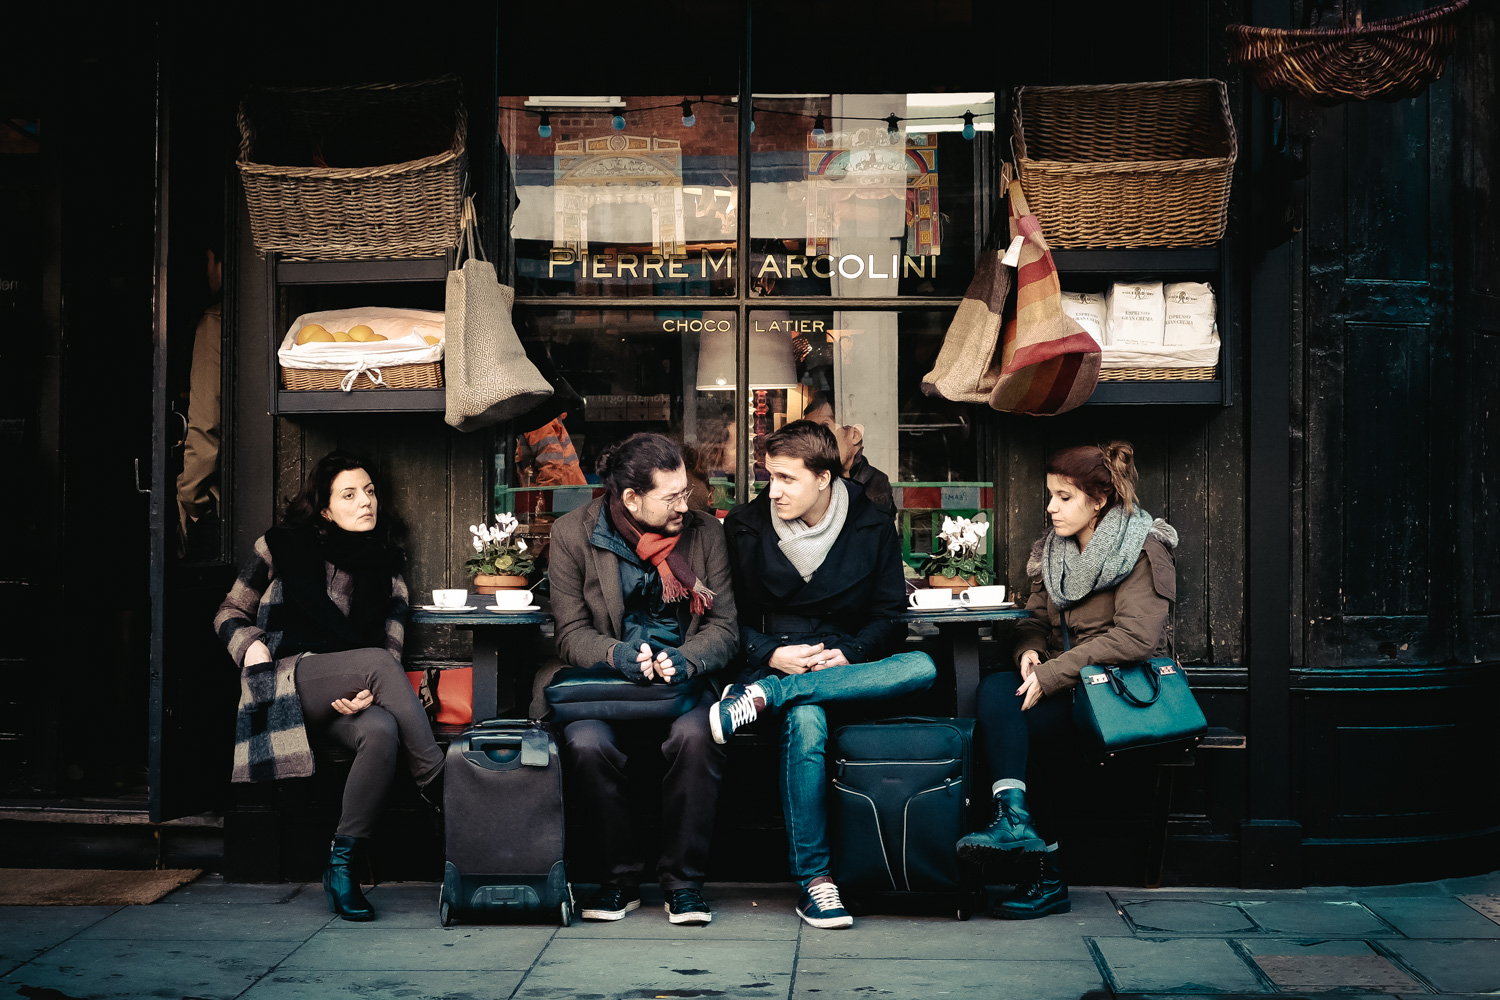 Four people sit outside an upmarket cafe with coffee.